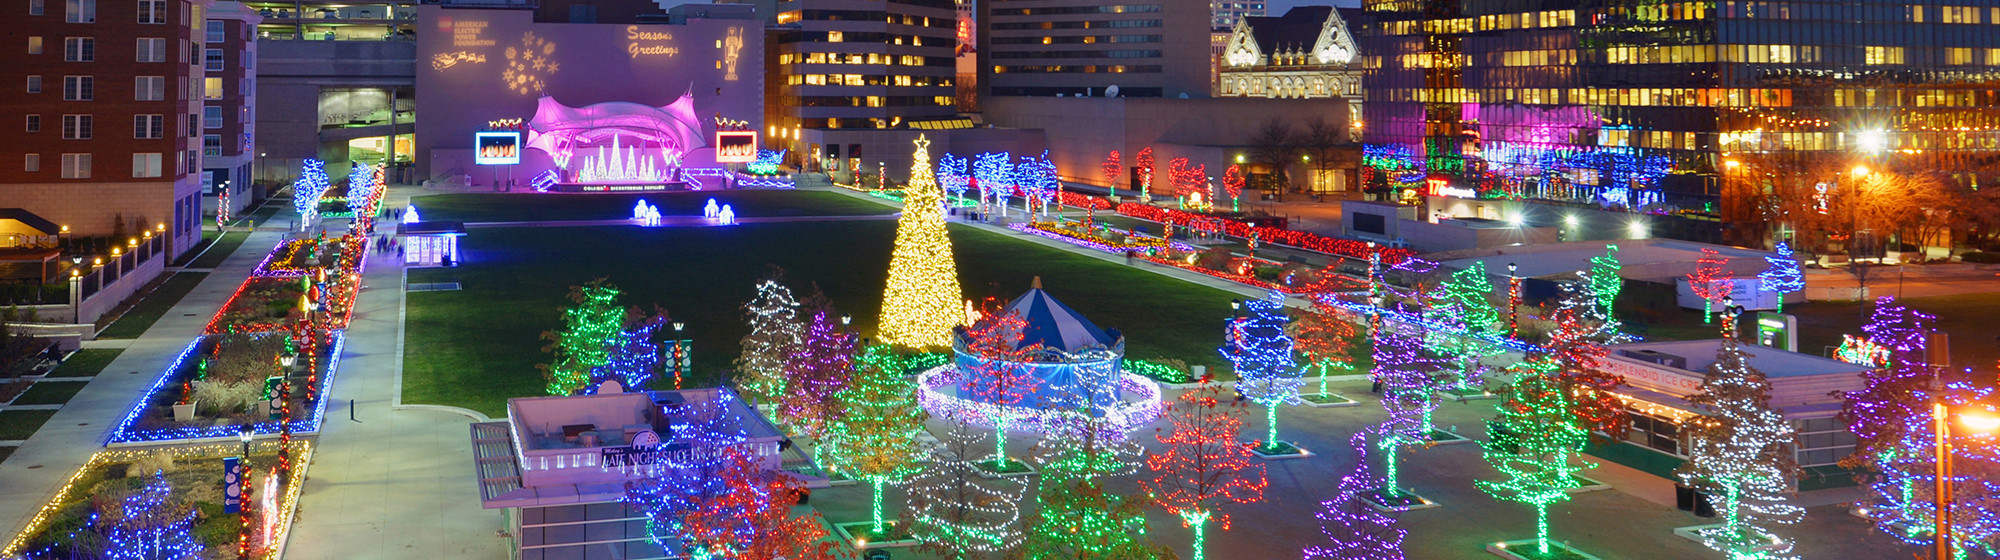 Downtown Holiday Lights